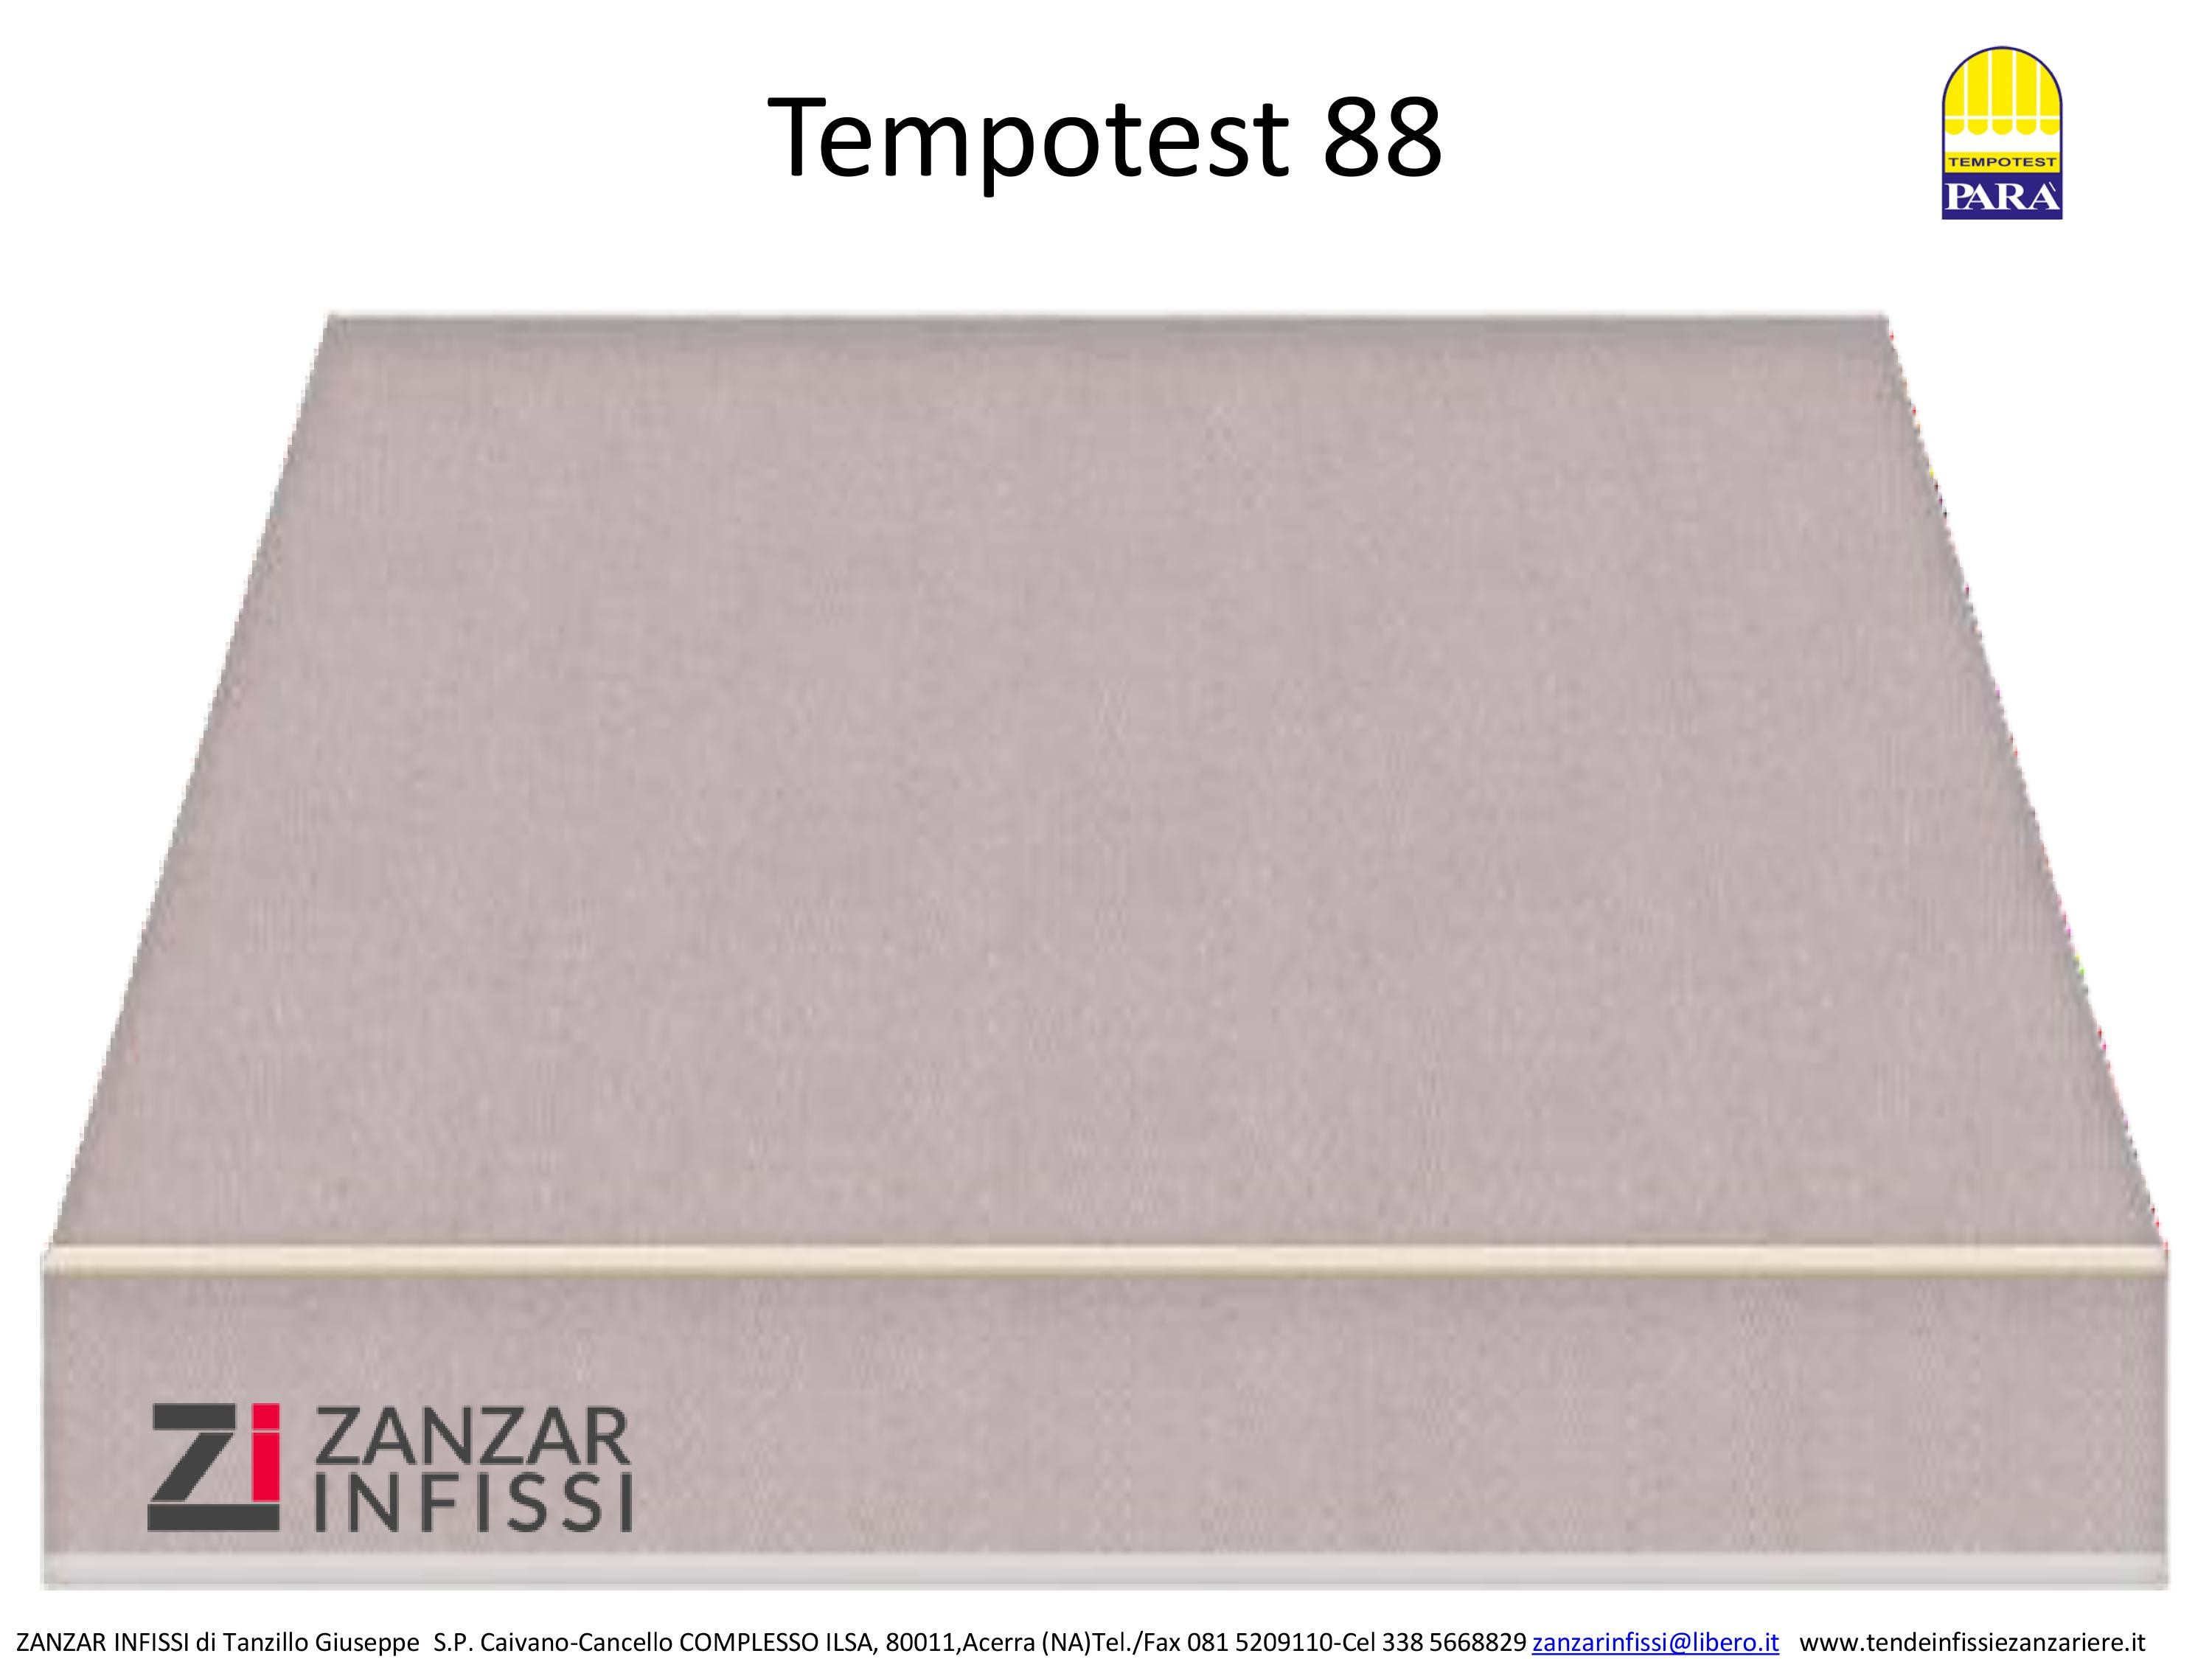 Tempotest 88